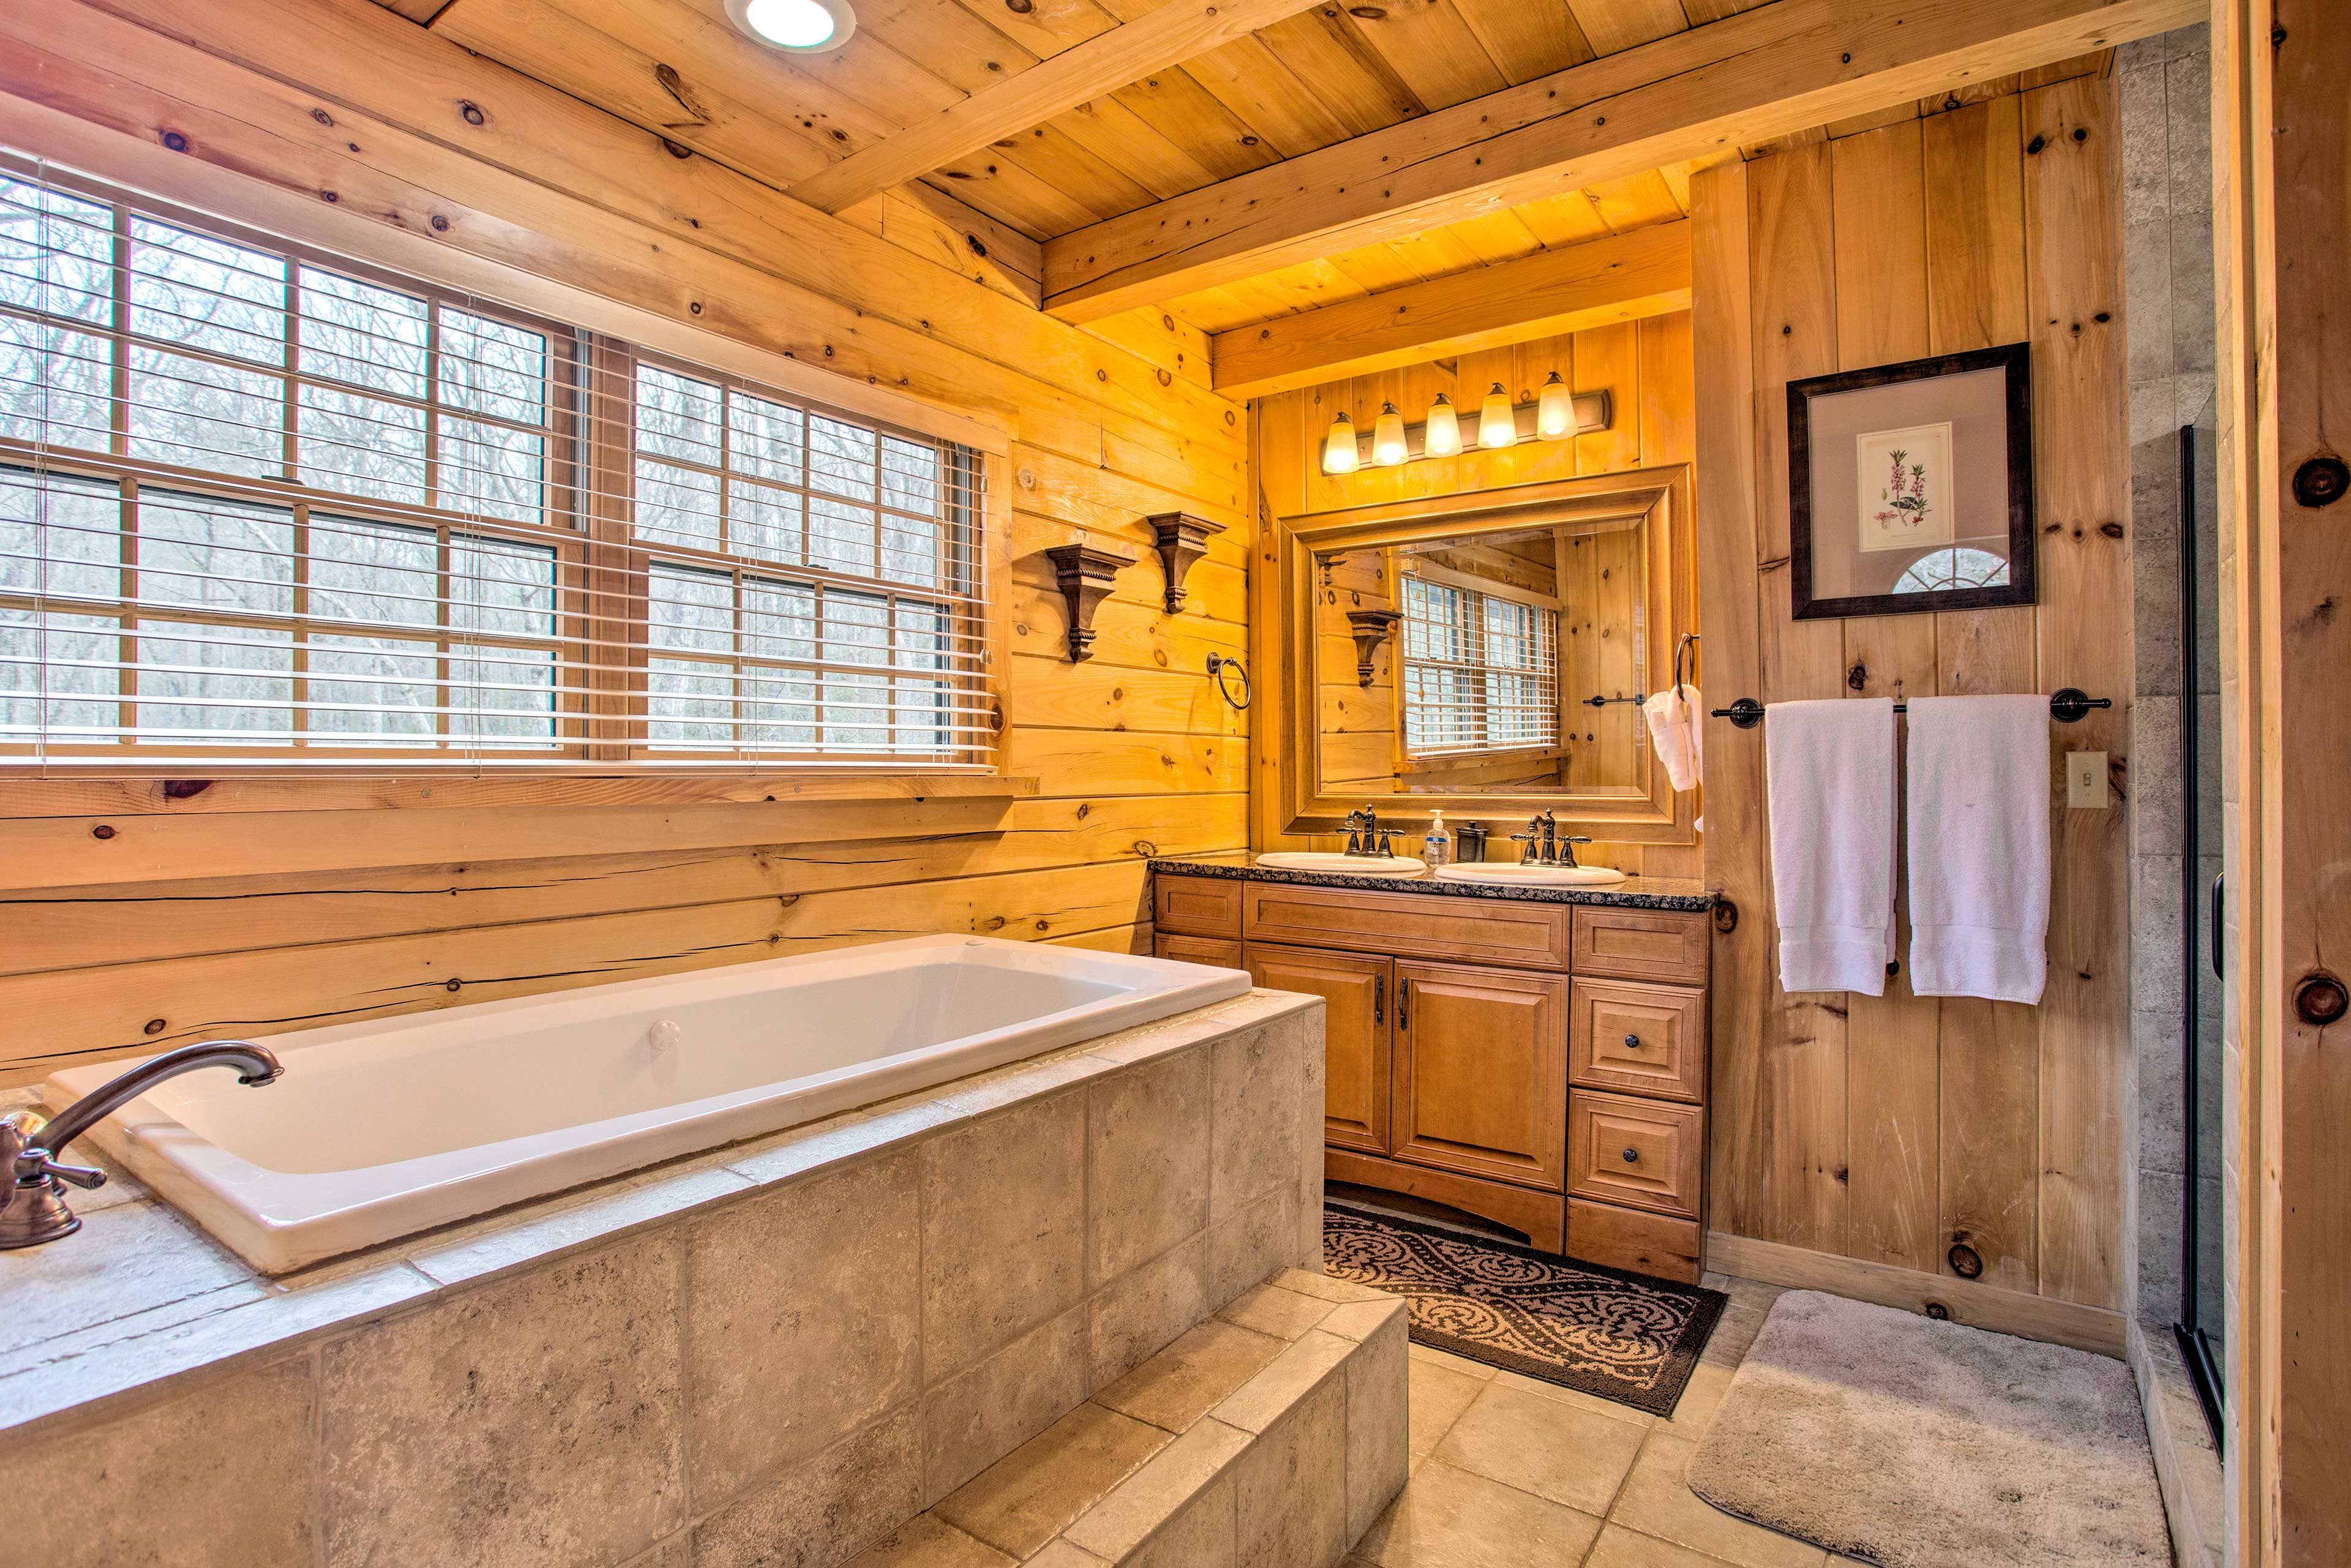 Soak in the tub after a busy day on the lake.